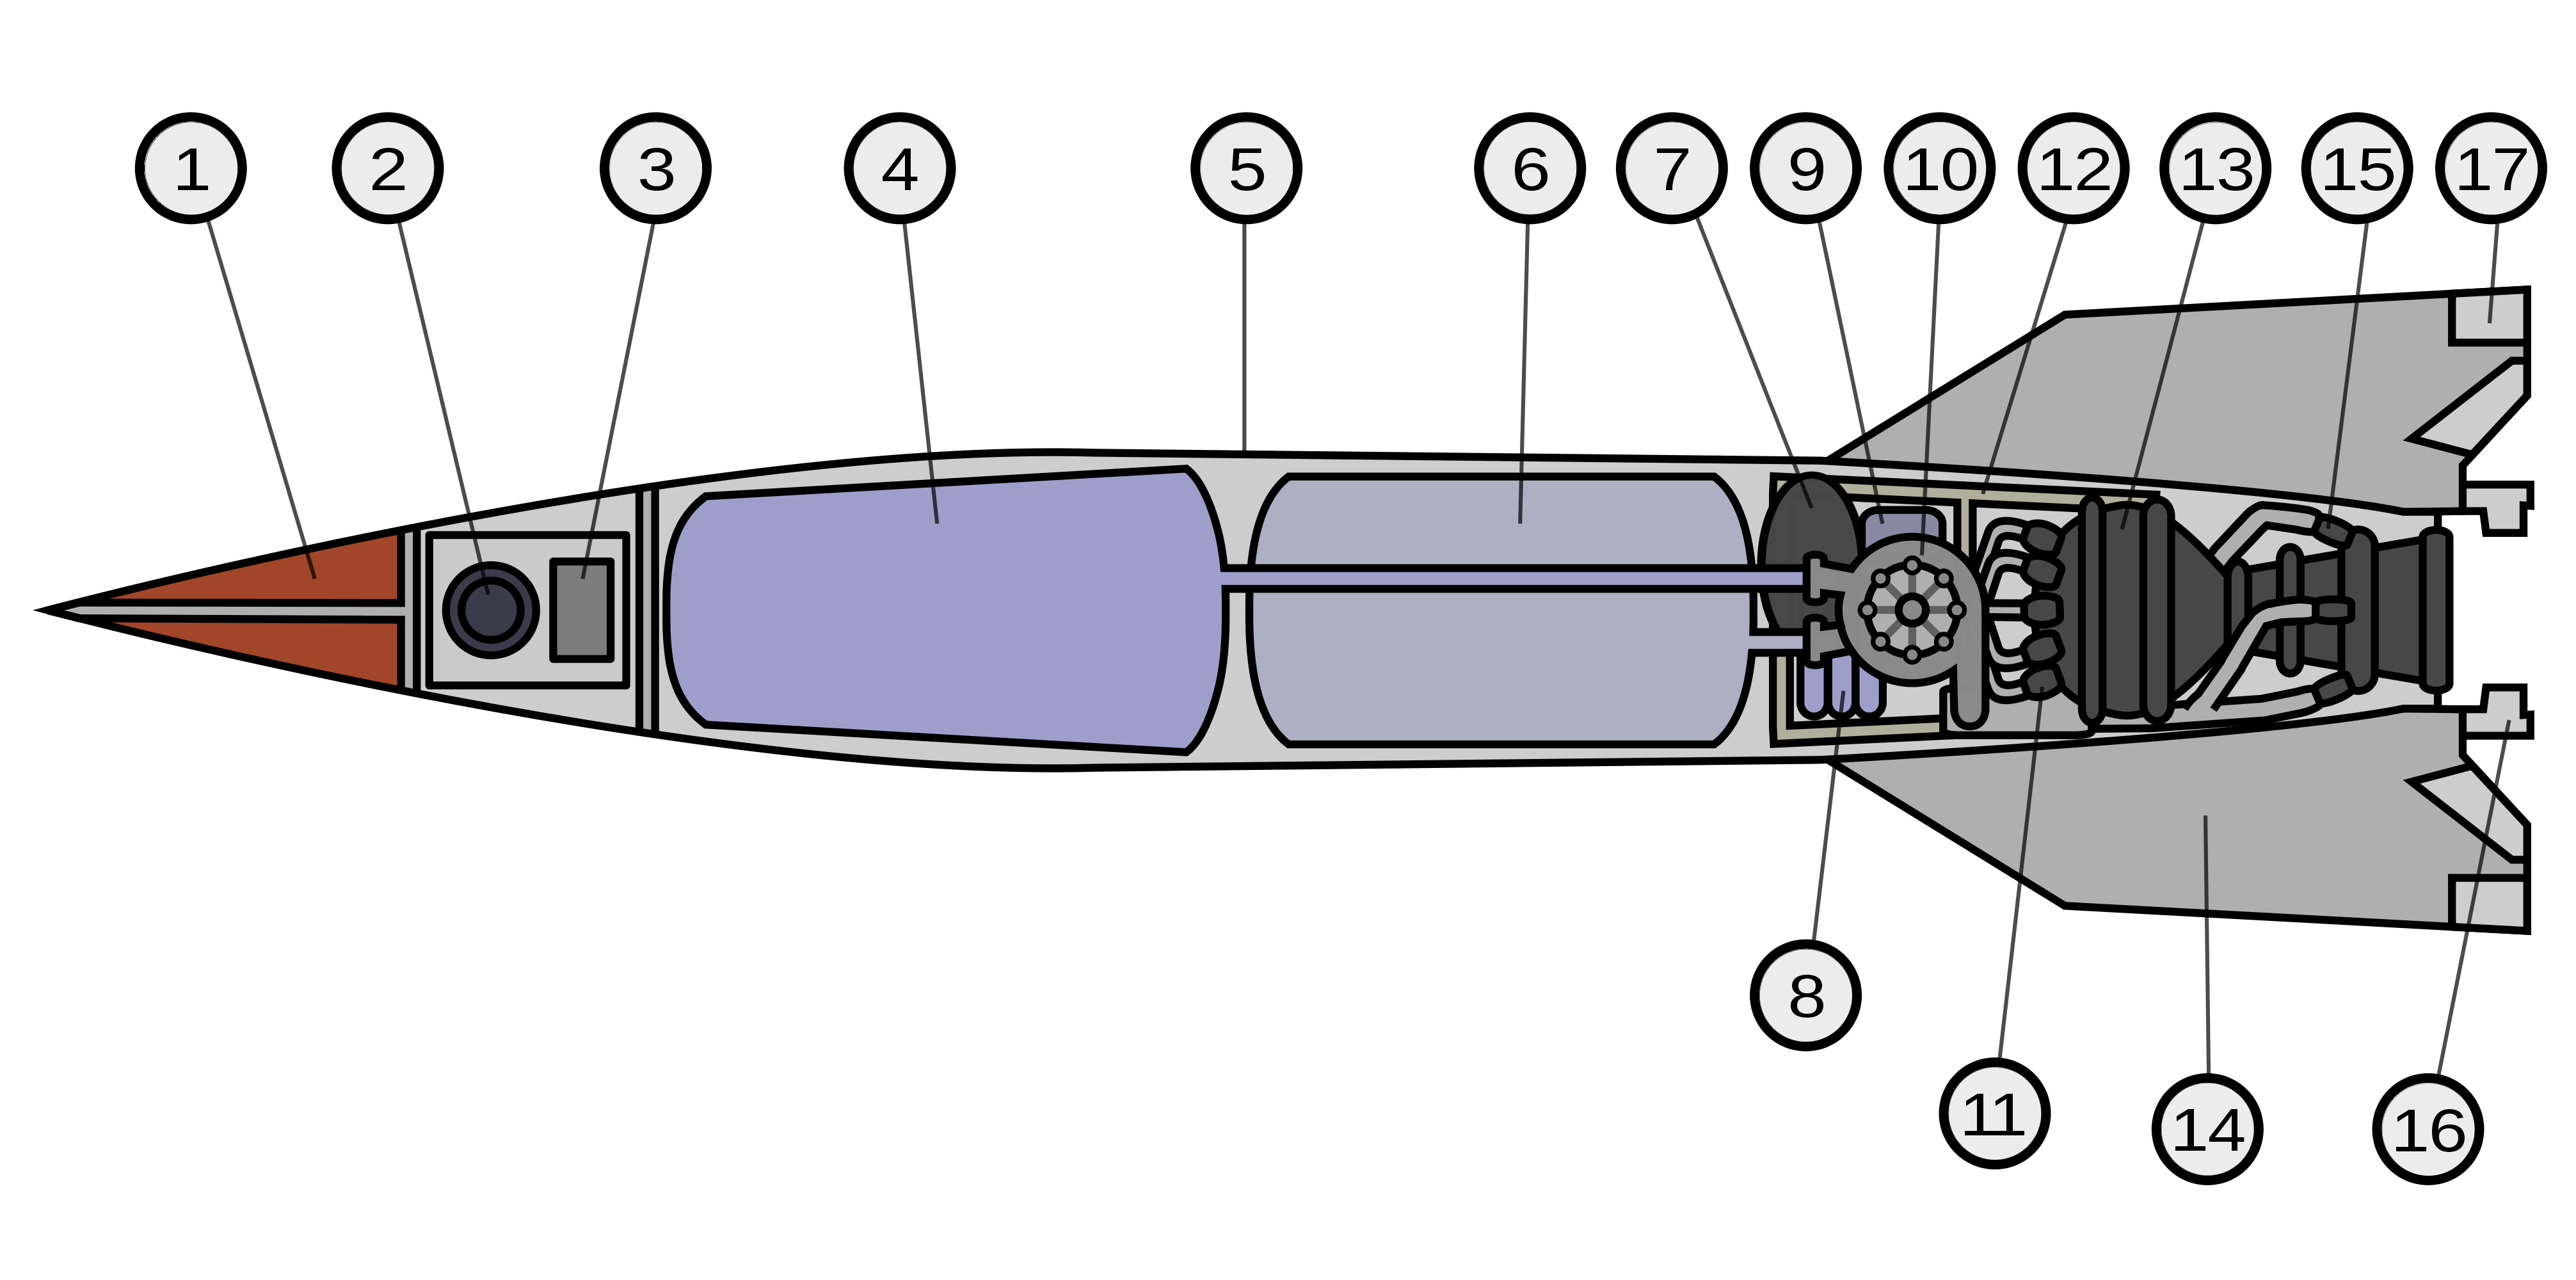 File:Diagram Schematic of the V2 rocket (numbered).png - Wikimedia